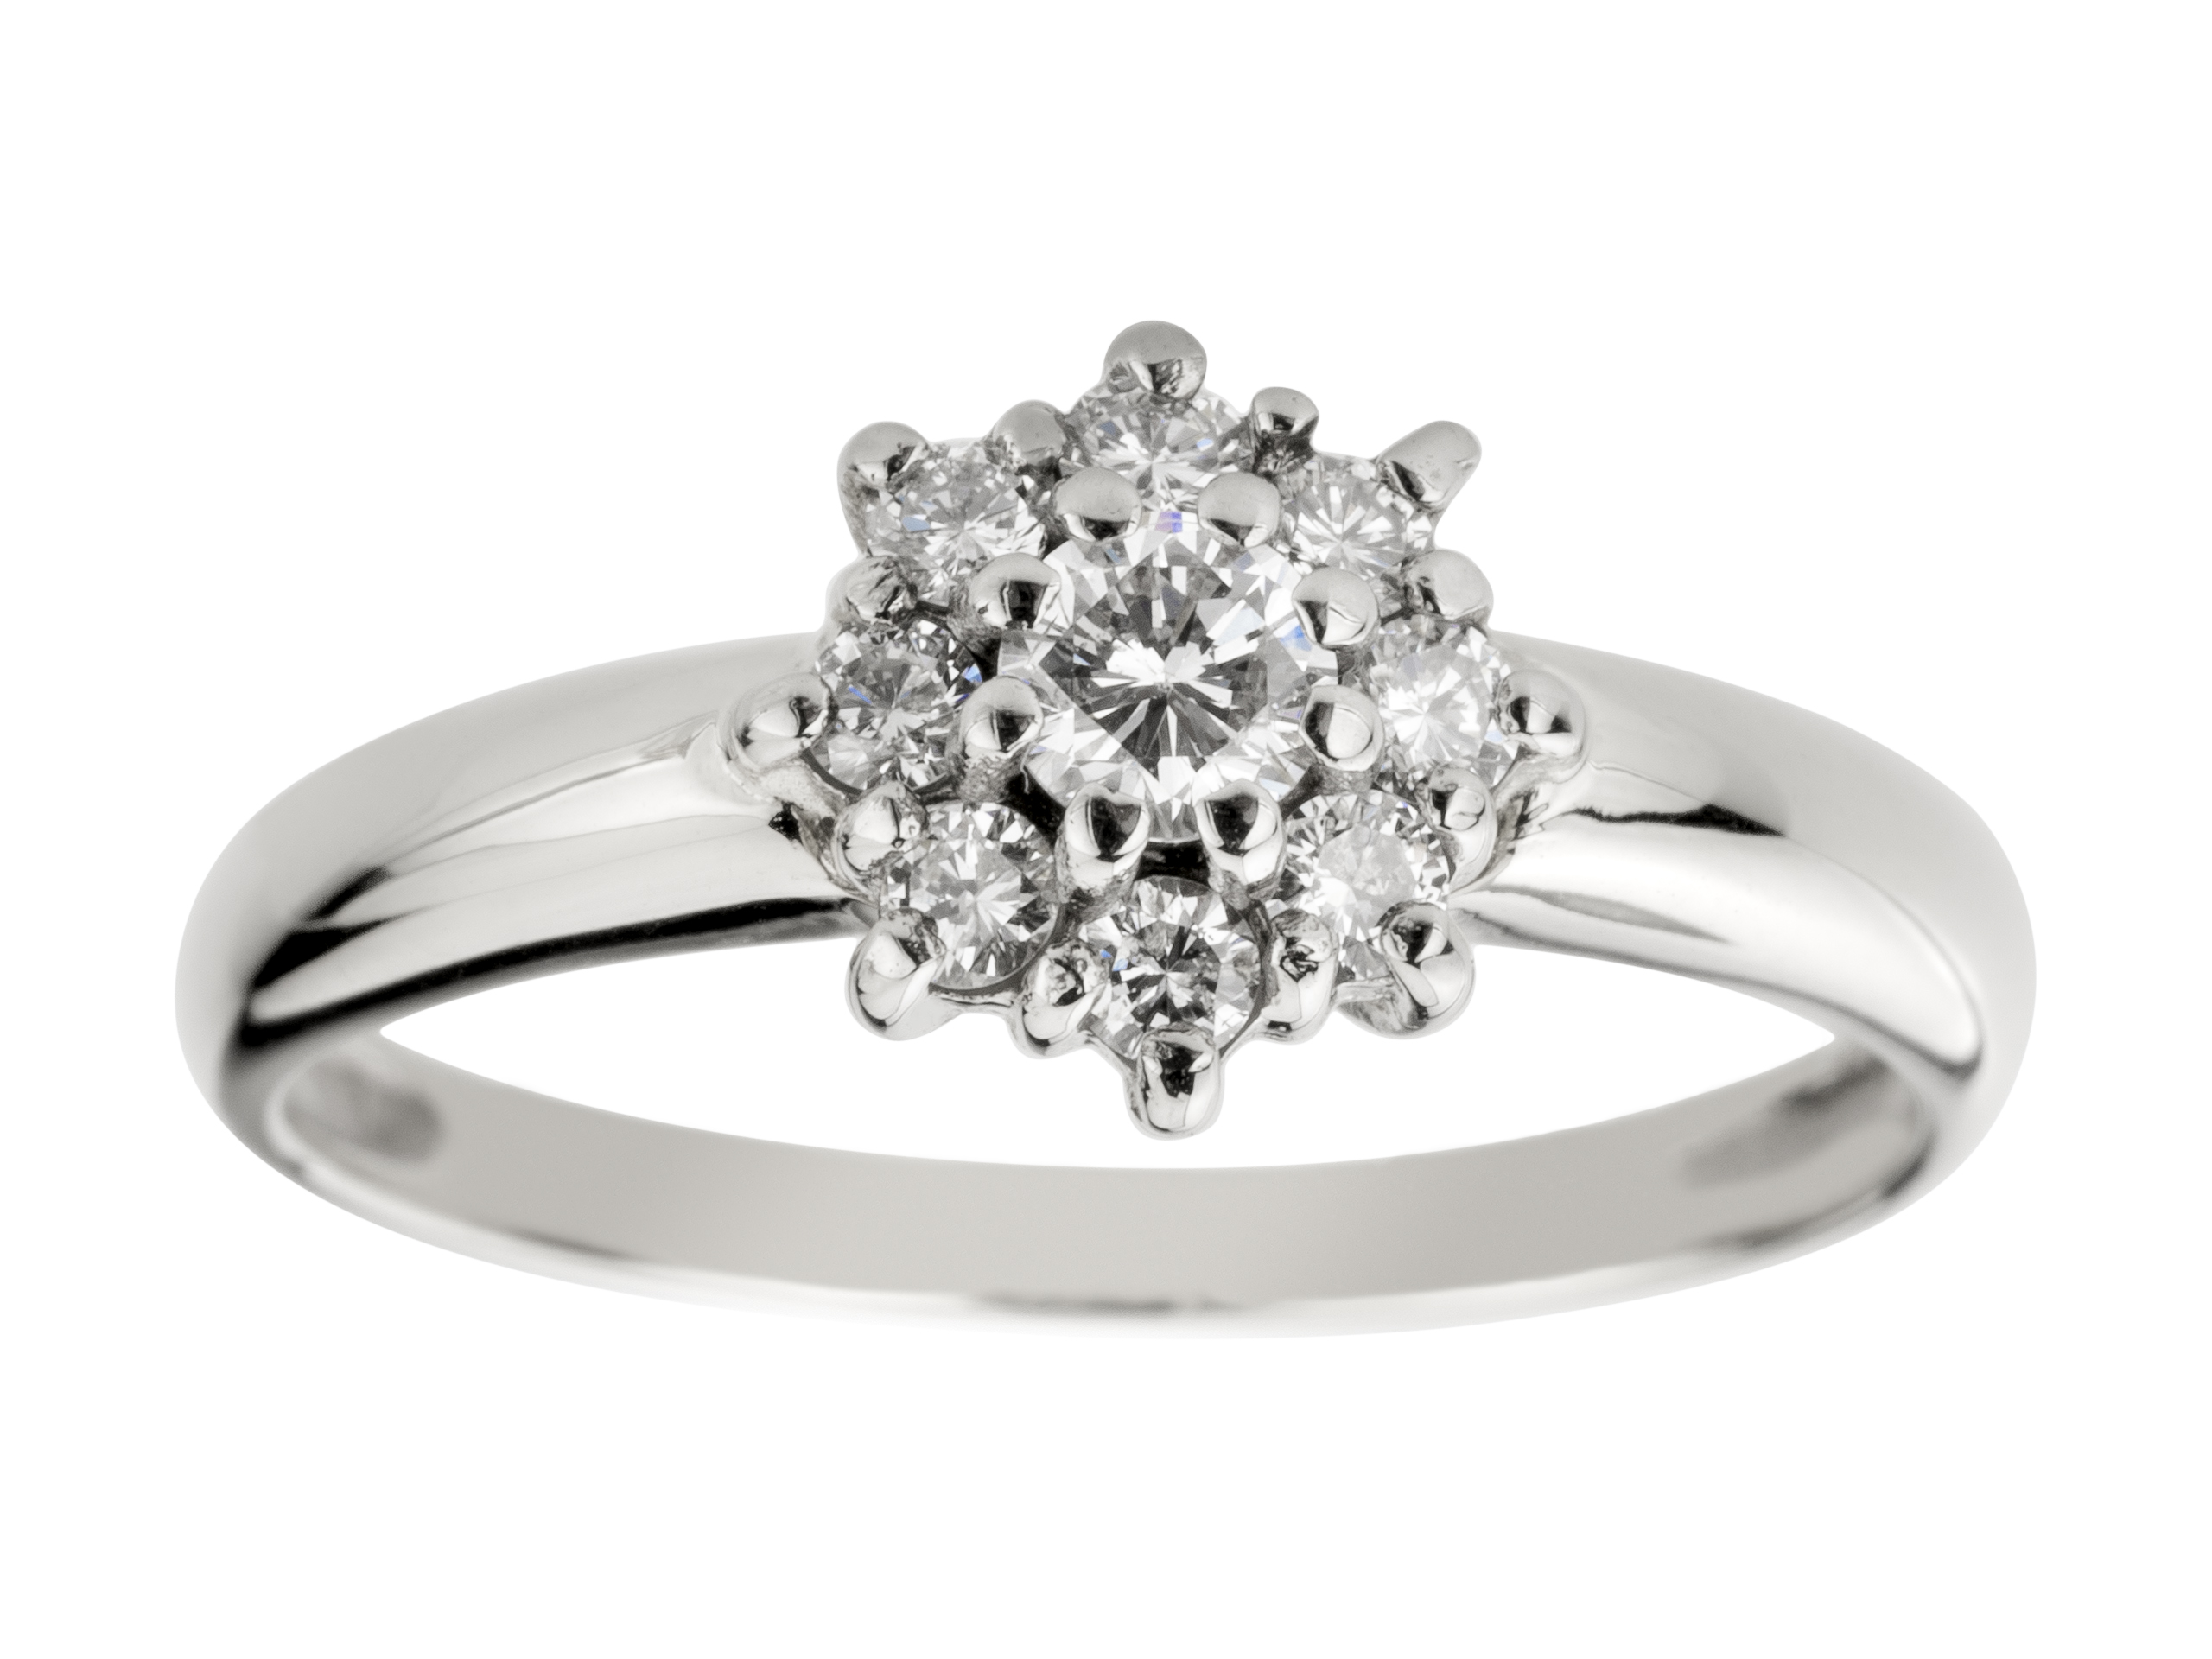 WHITE GOLD RING s 9 DIAMANTY, 0.37 ct